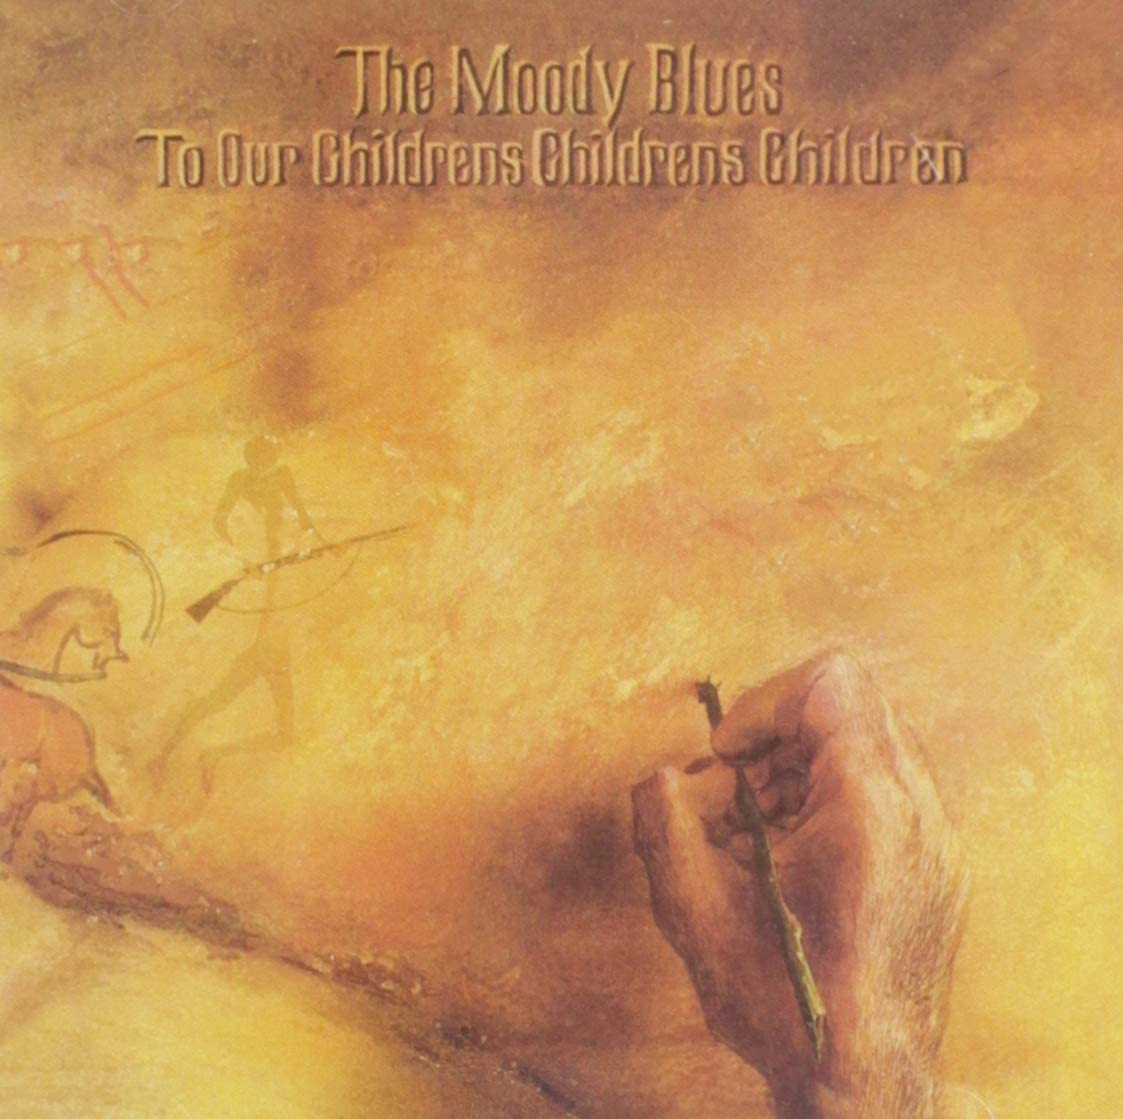 MOODY BLUES - TO OUR CHILDREN'S CHILDREN (CD)